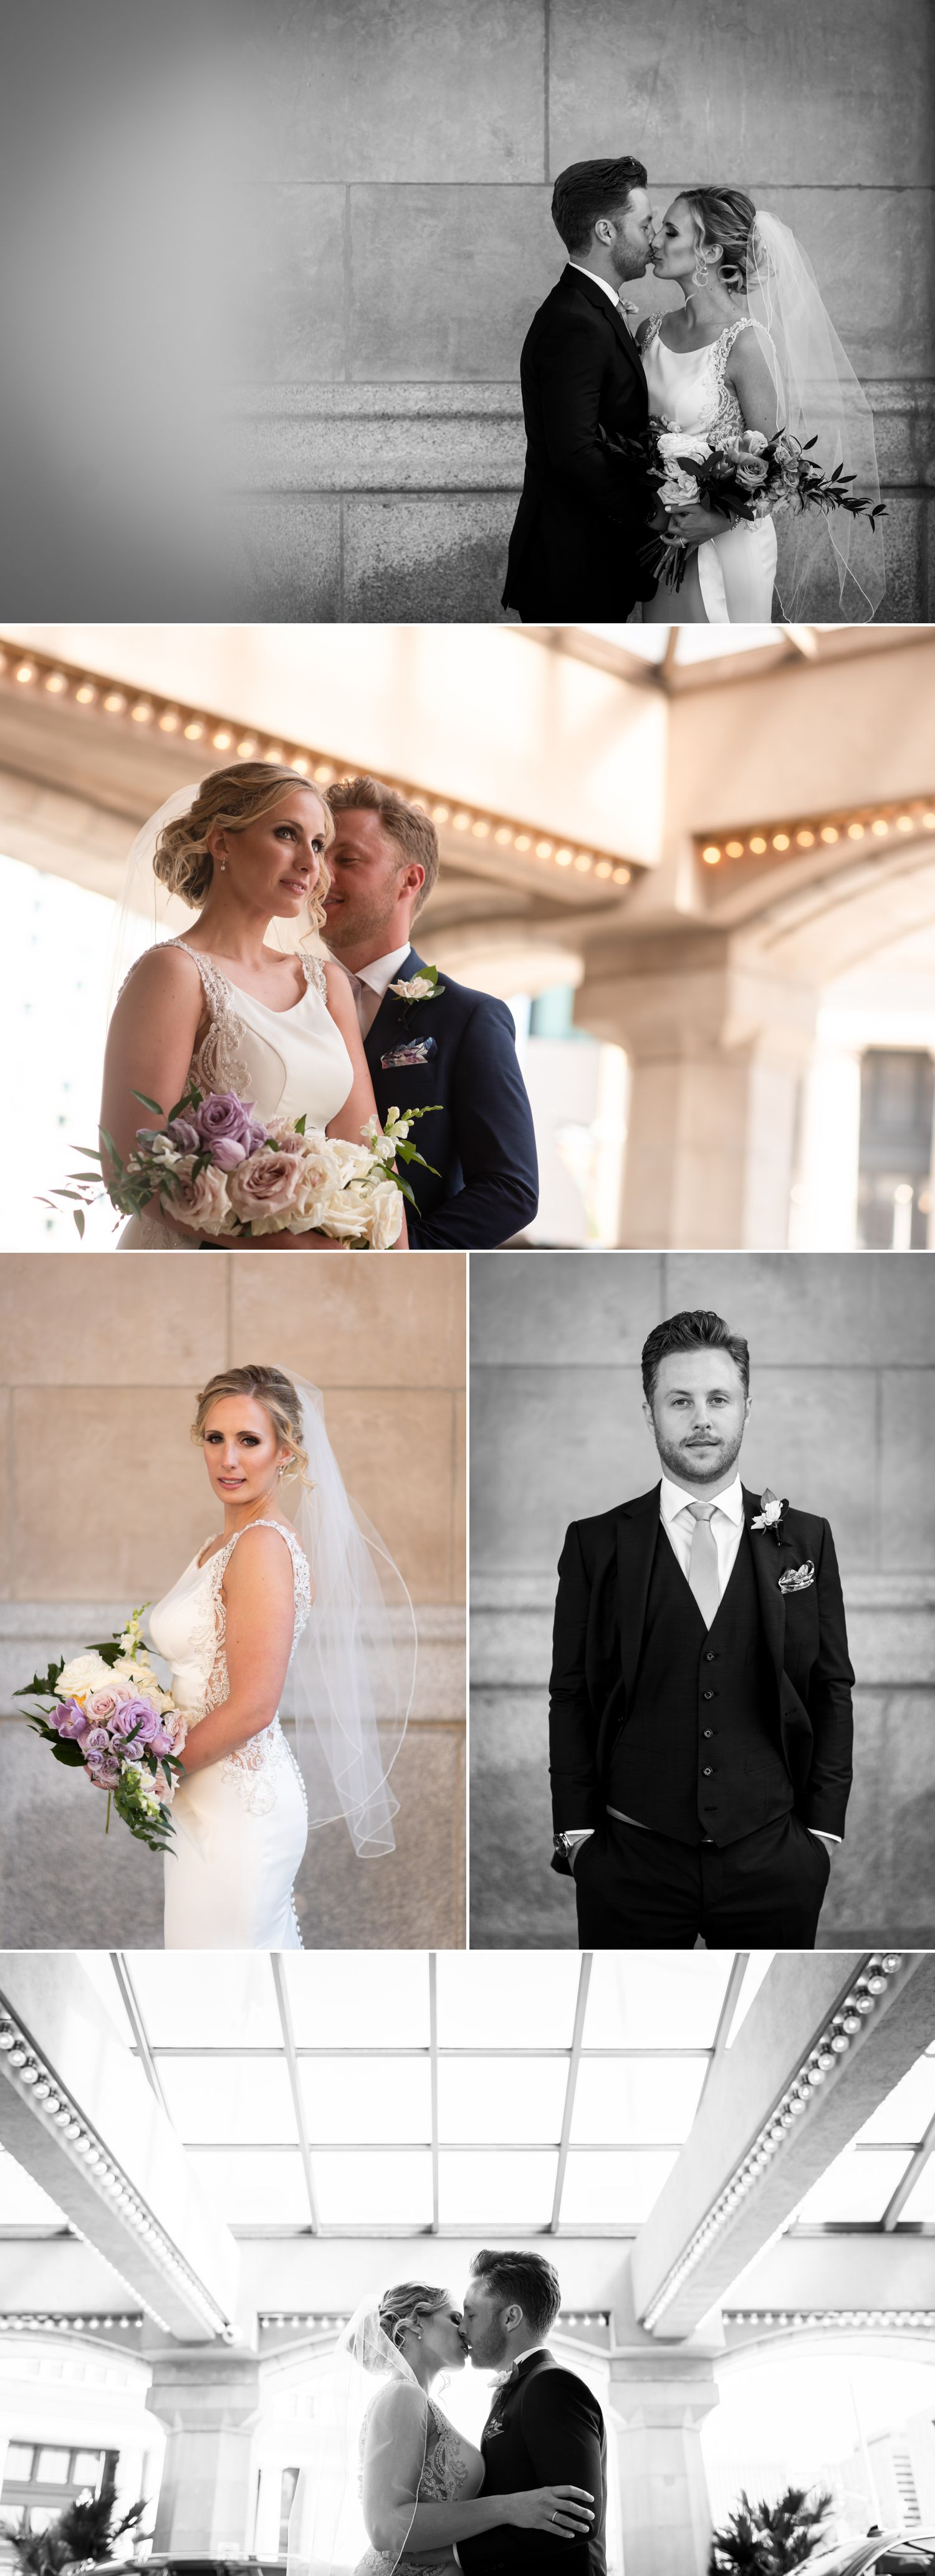 Portraits of the bride and groom taken in front of the Chateau Laurier in downtown Ottawa